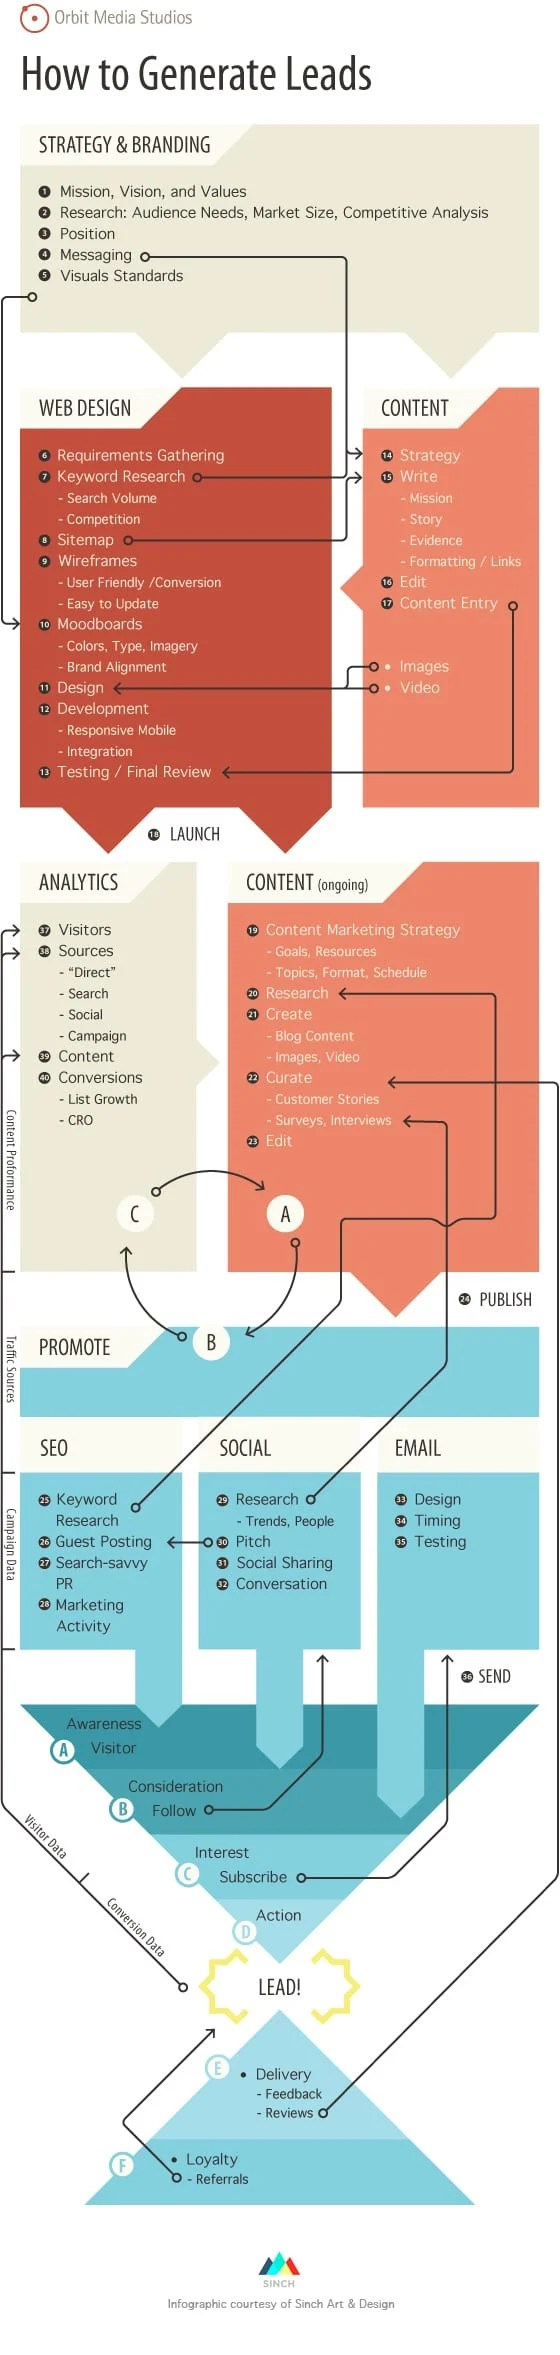 Inbound Marketing techniques for successful lead generation